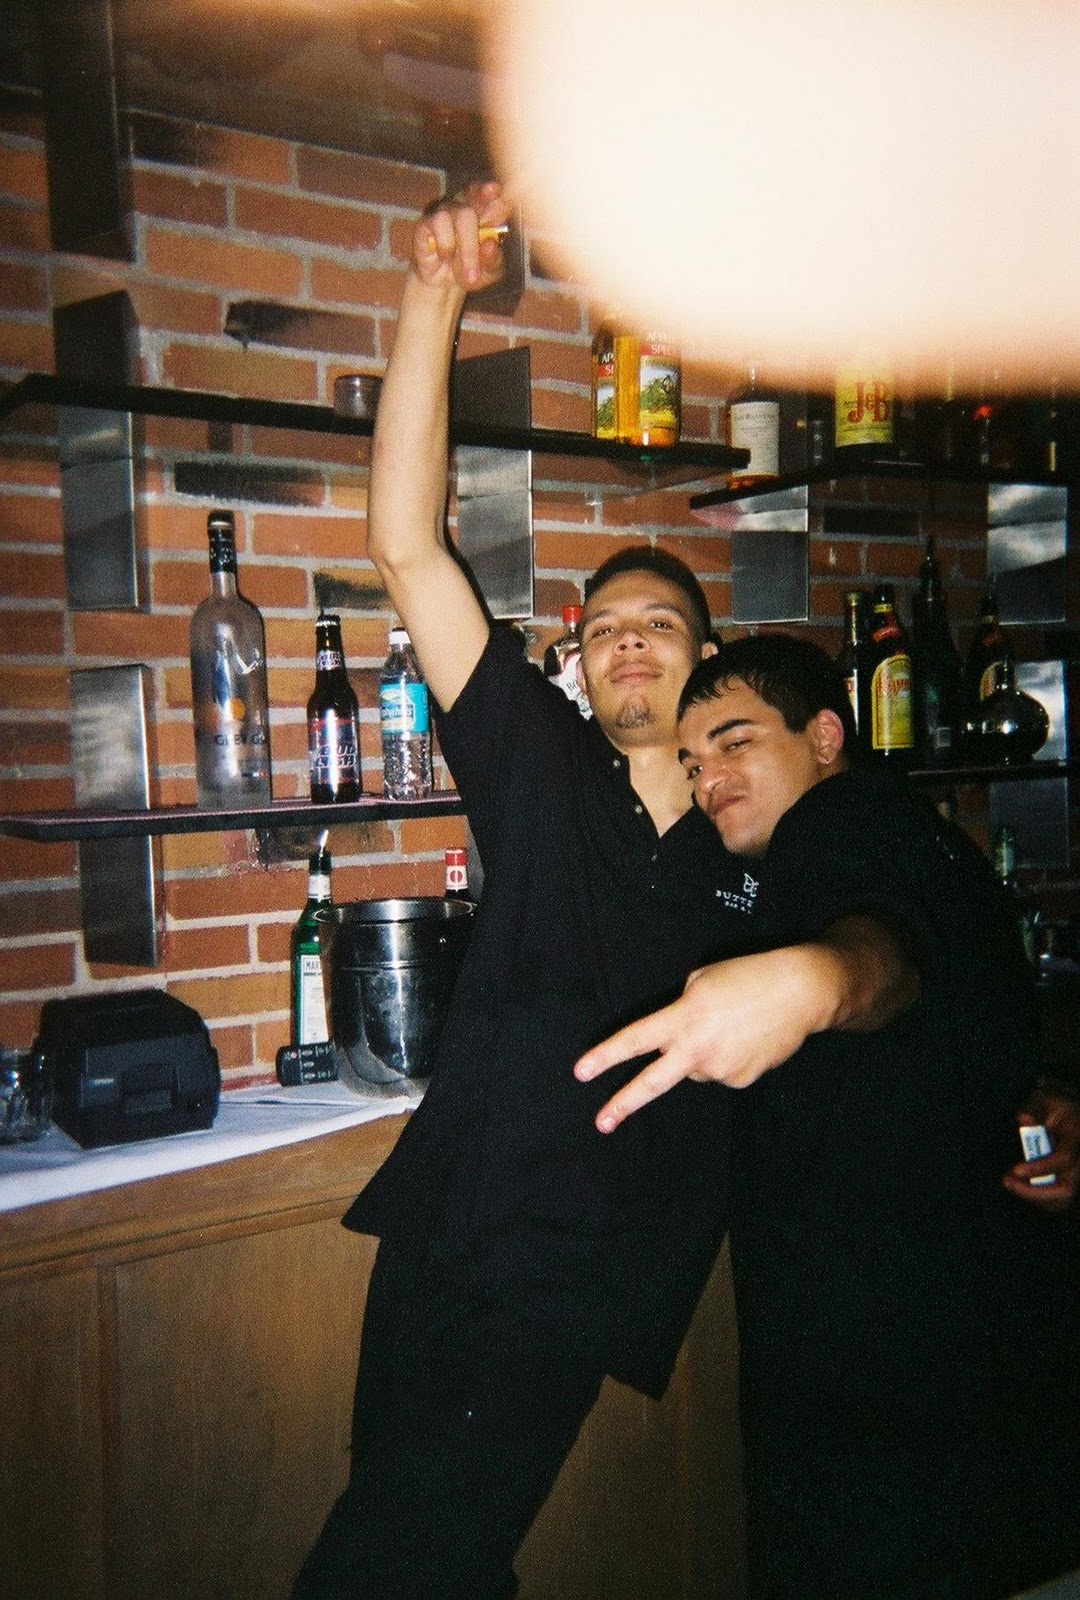 Should bartenders be held responsible for the behavior of their patrons?